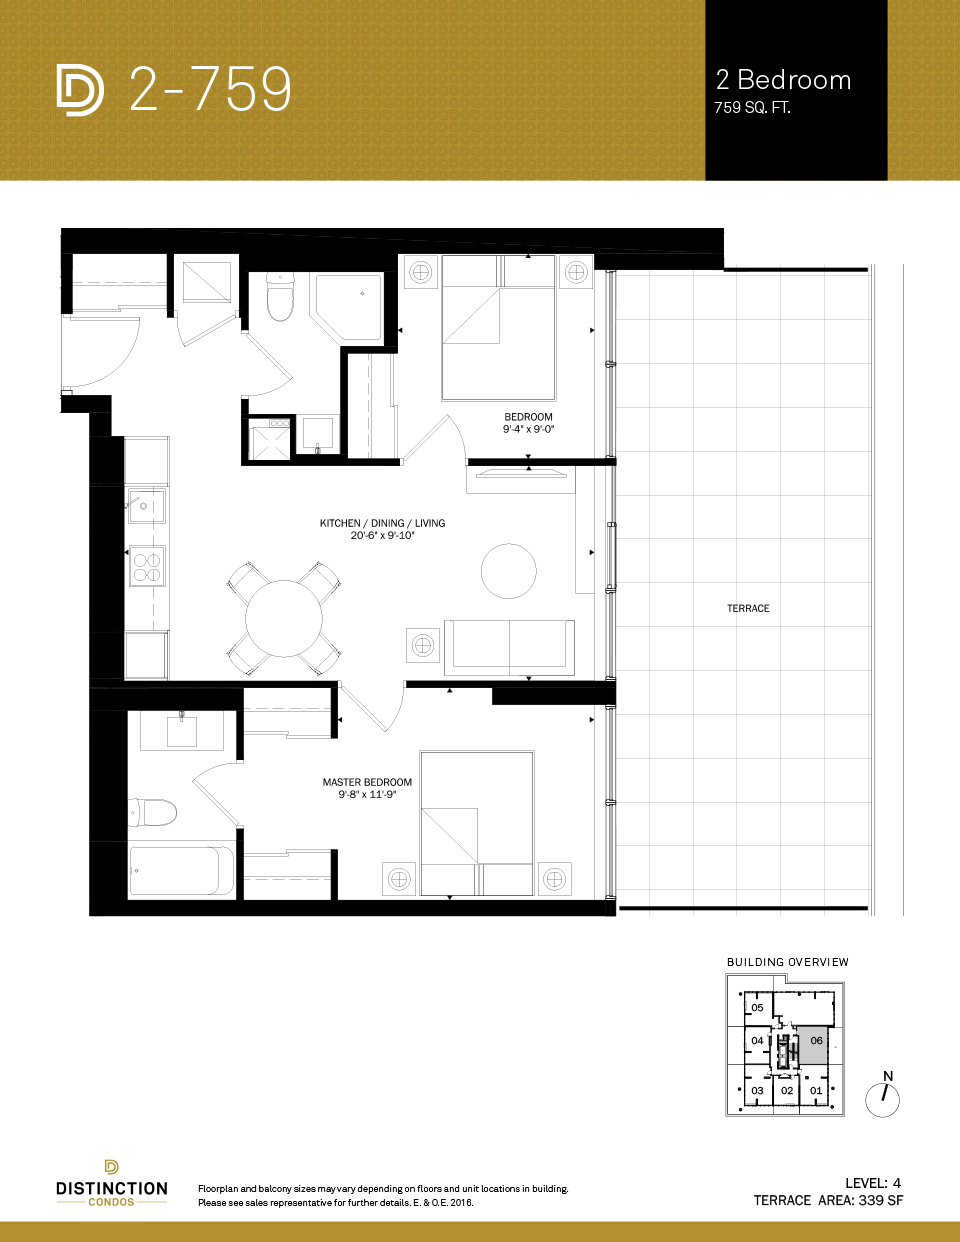 distinction condos floorplan 2-759